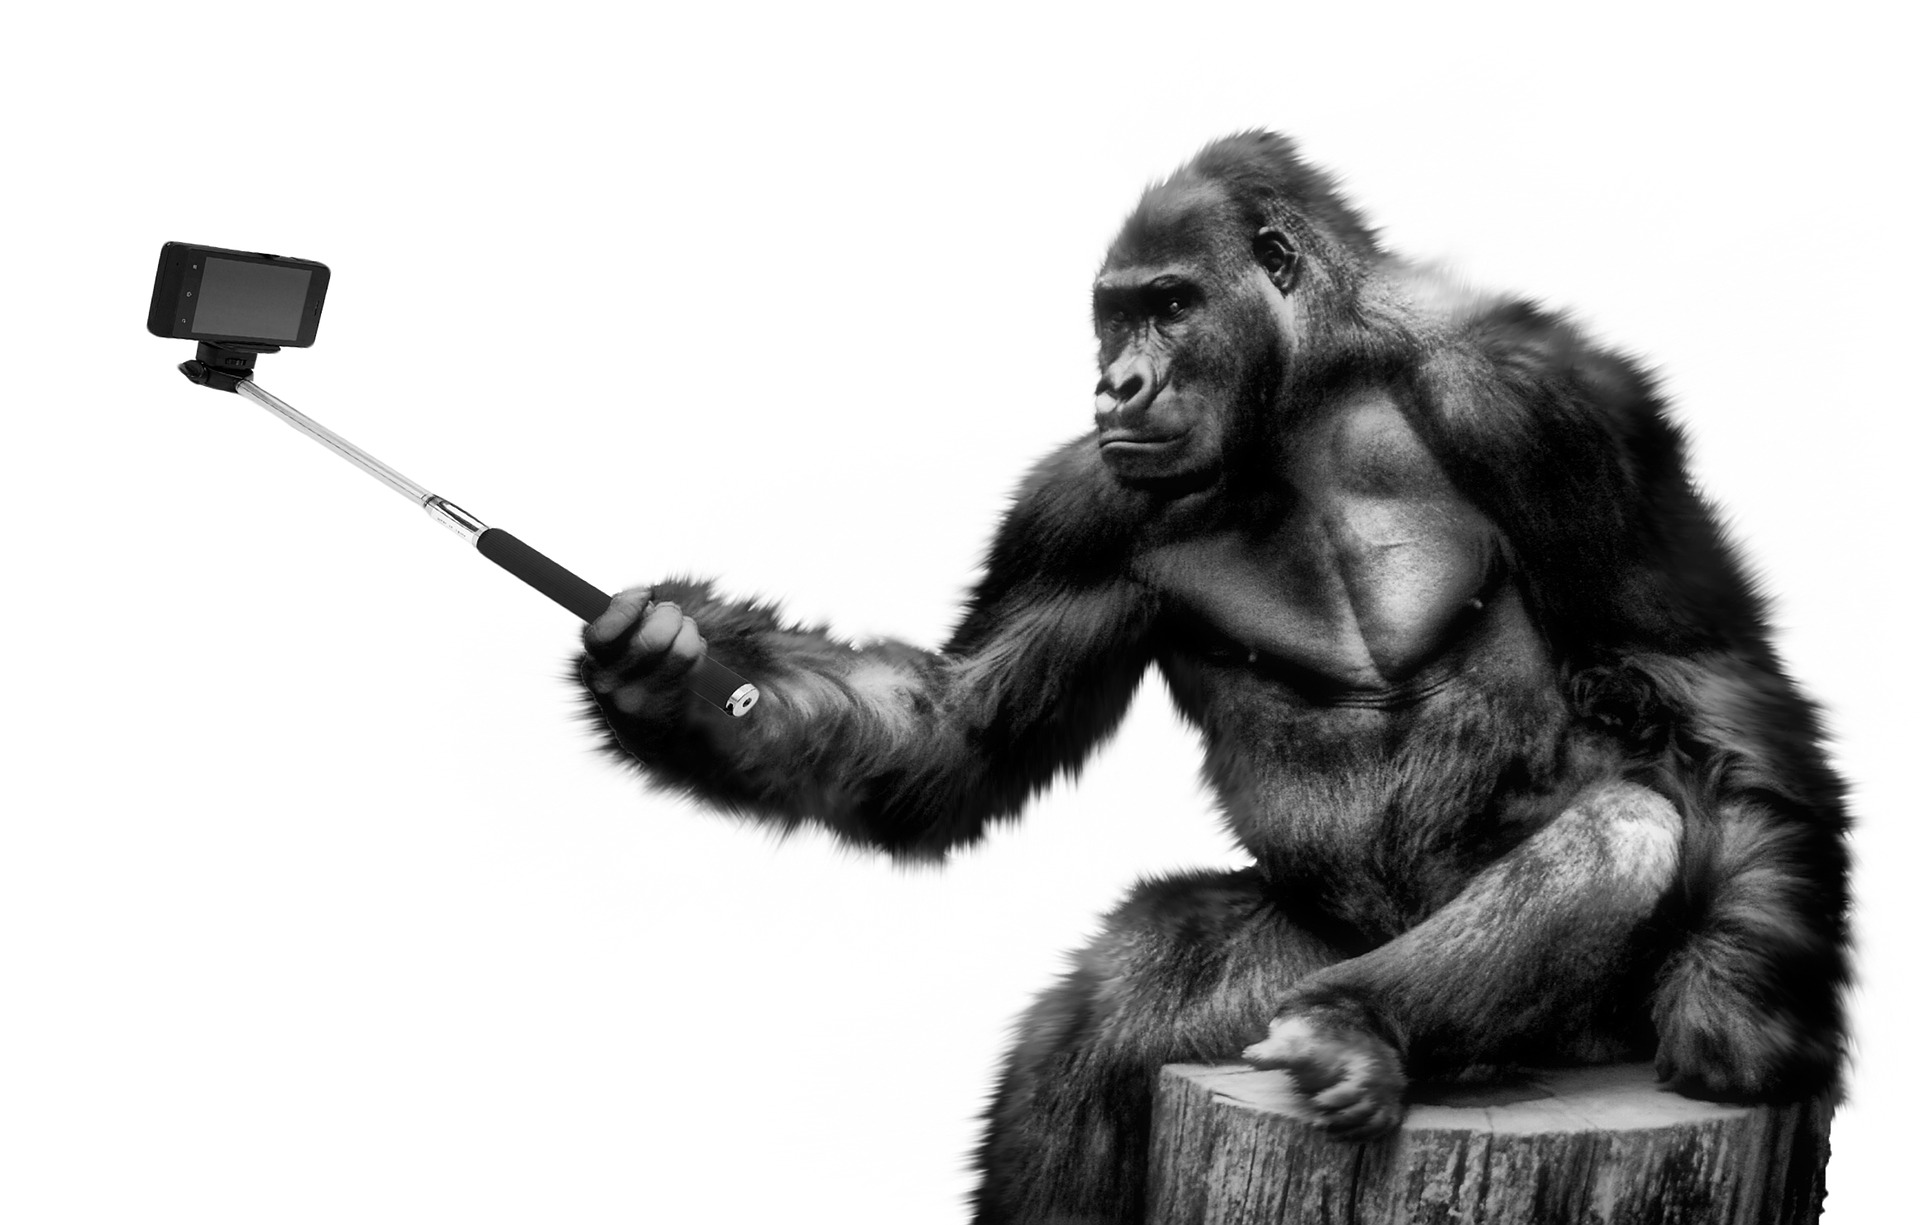 Ape taking photo with selfie stick